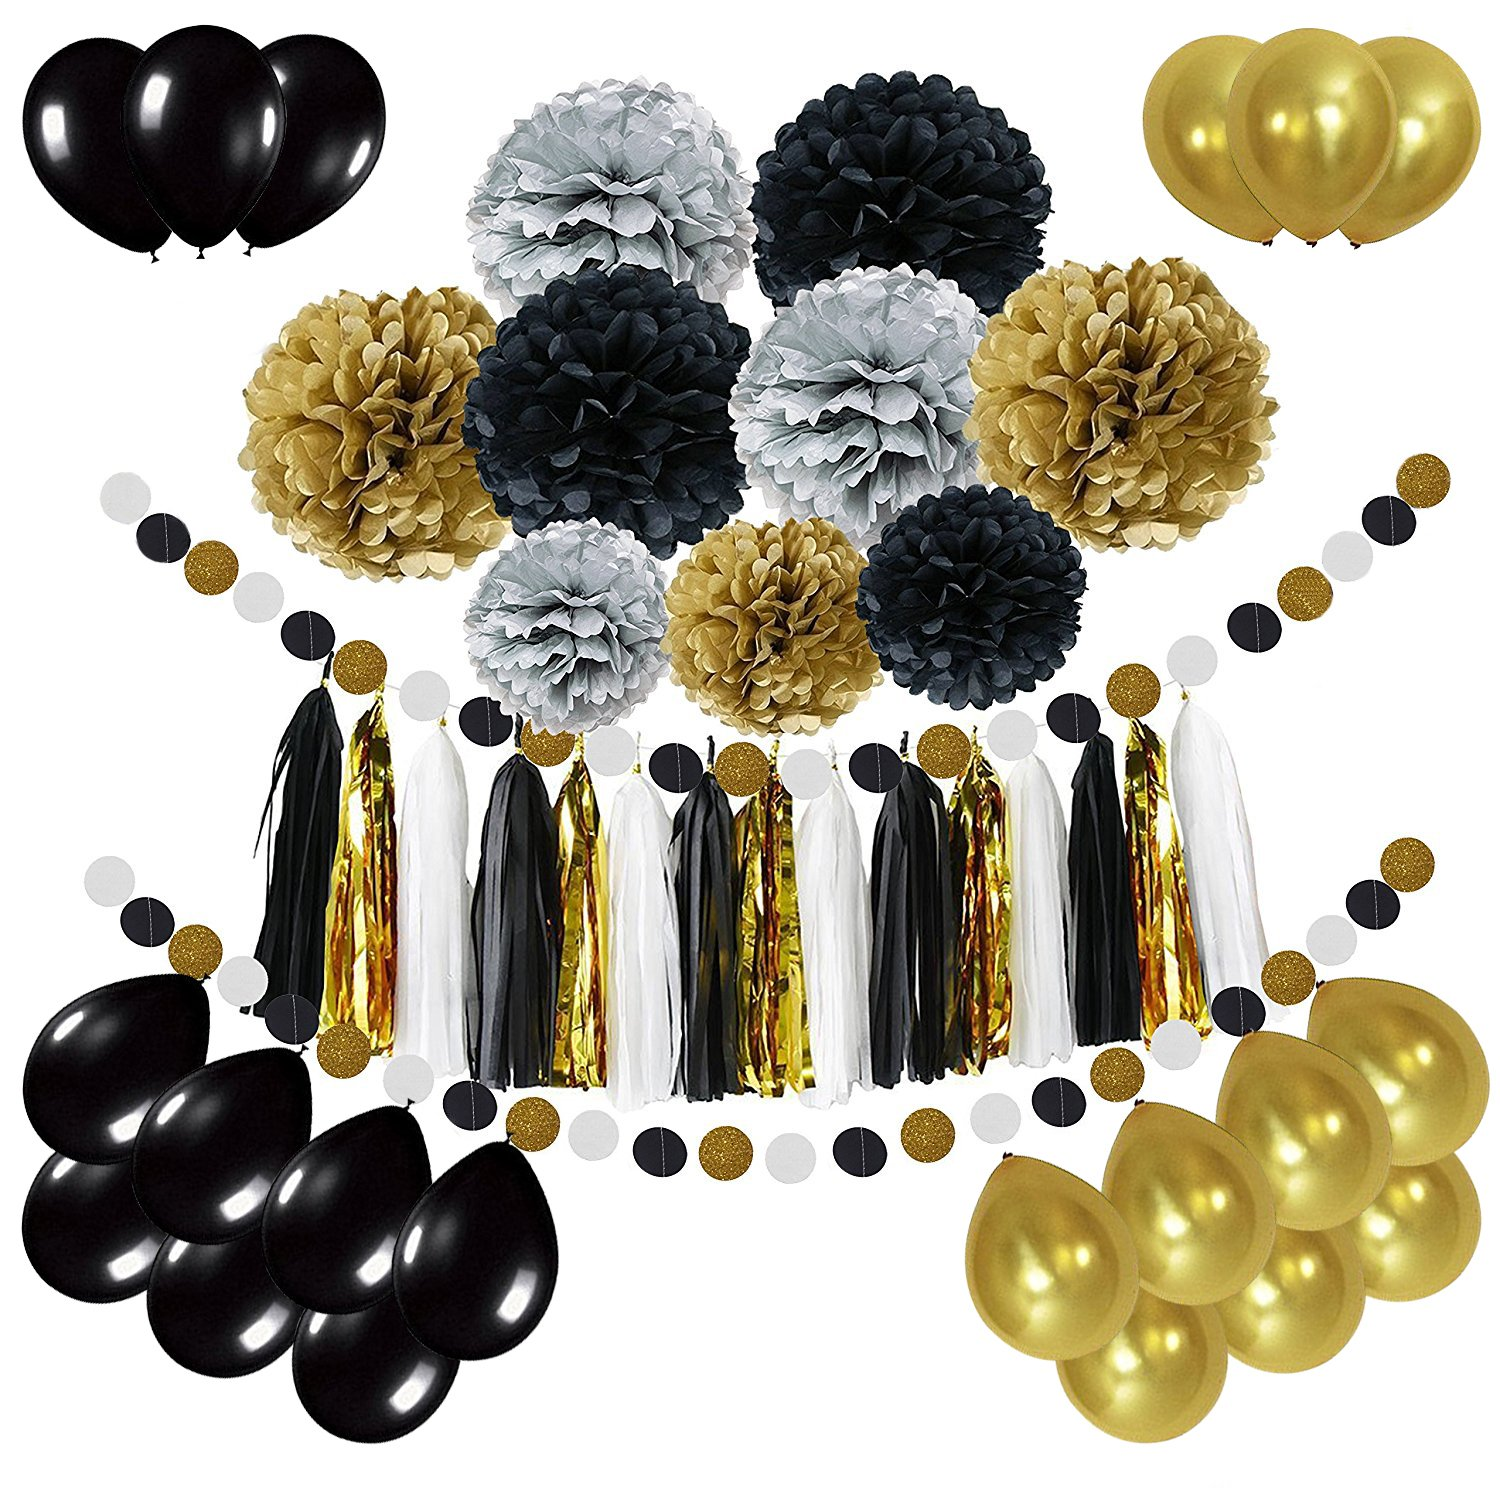 Newland Tissue Paper, 46 pcs Party Decorations, Pom Poms Flowers, Tissue Tassel Garland, Latex Balloons, Polka Dot garland Kit, For Wedding Birthday Party Festival Decorations (Black Silver Gold) by Newland